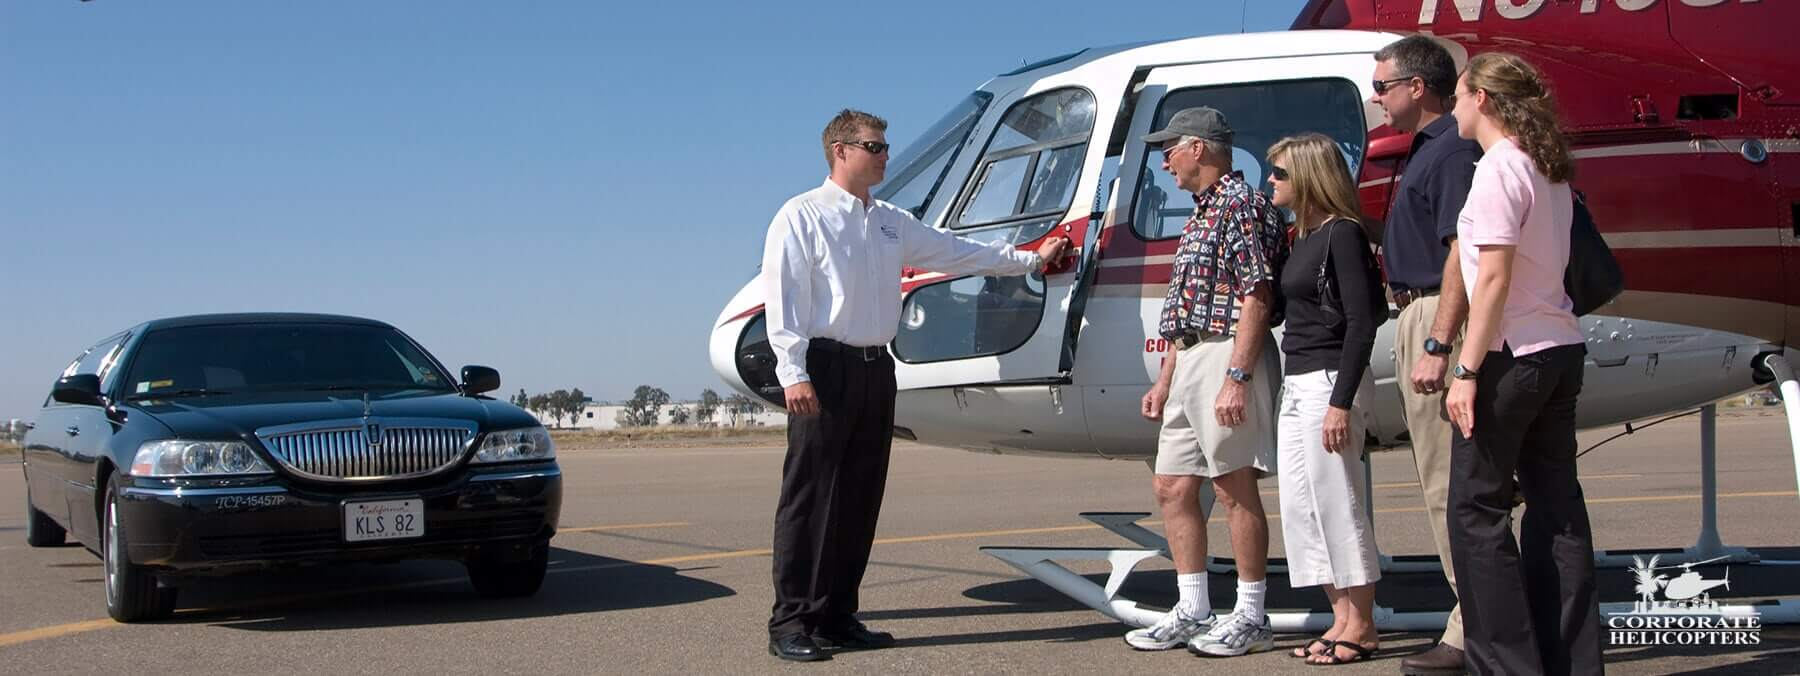 corporate helicopters san go ca with Corporatehelicopters on corporatehelicopters additionally corporatehelicopters additionally corporatehelicopters together with corporatehelicopters also Effects of Hurricane Katrina in New Orleans.